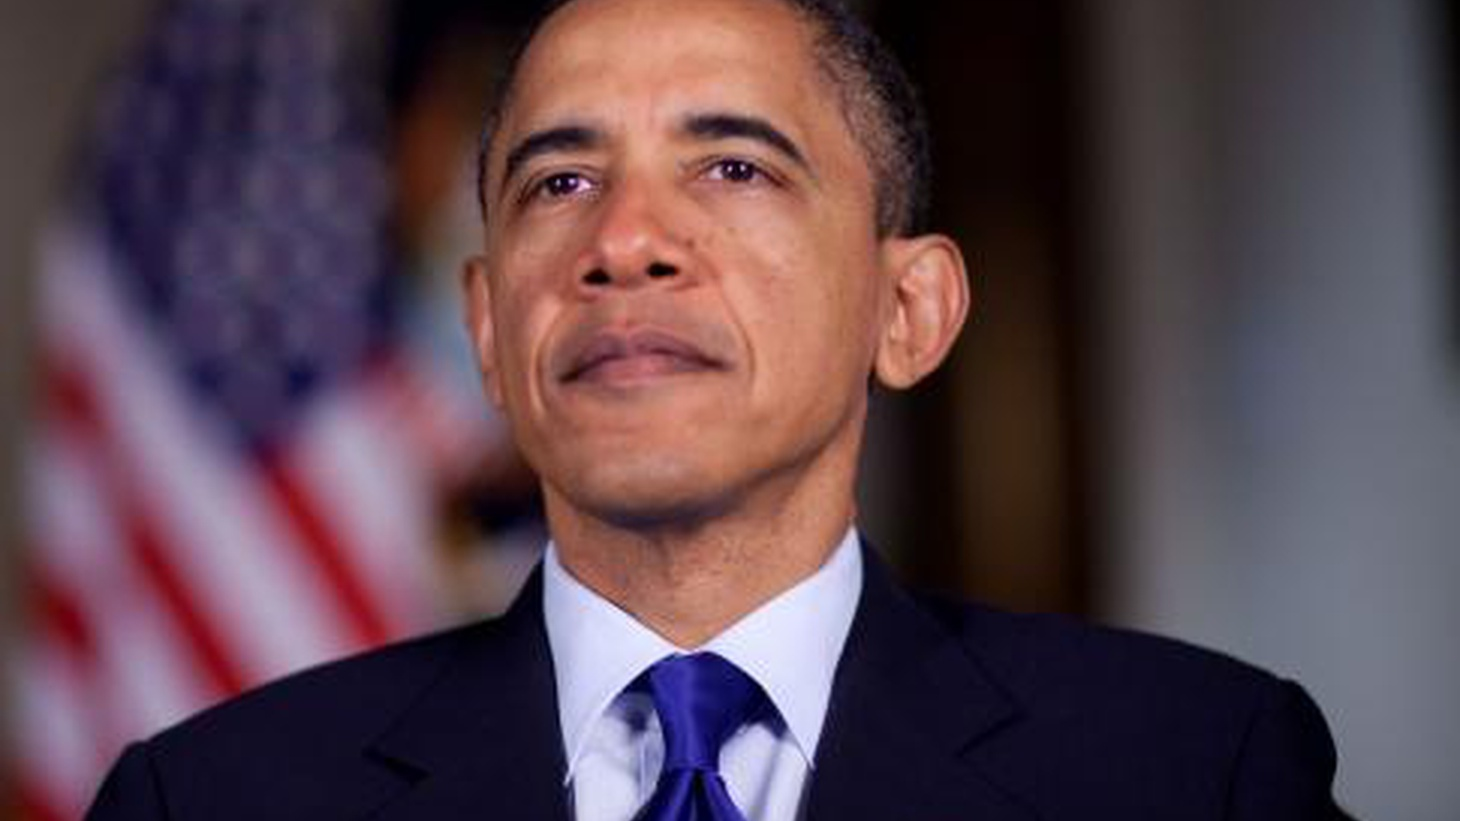 President Obama speaks to the nation on events in the Middle East and North Africa and US policy in the region.